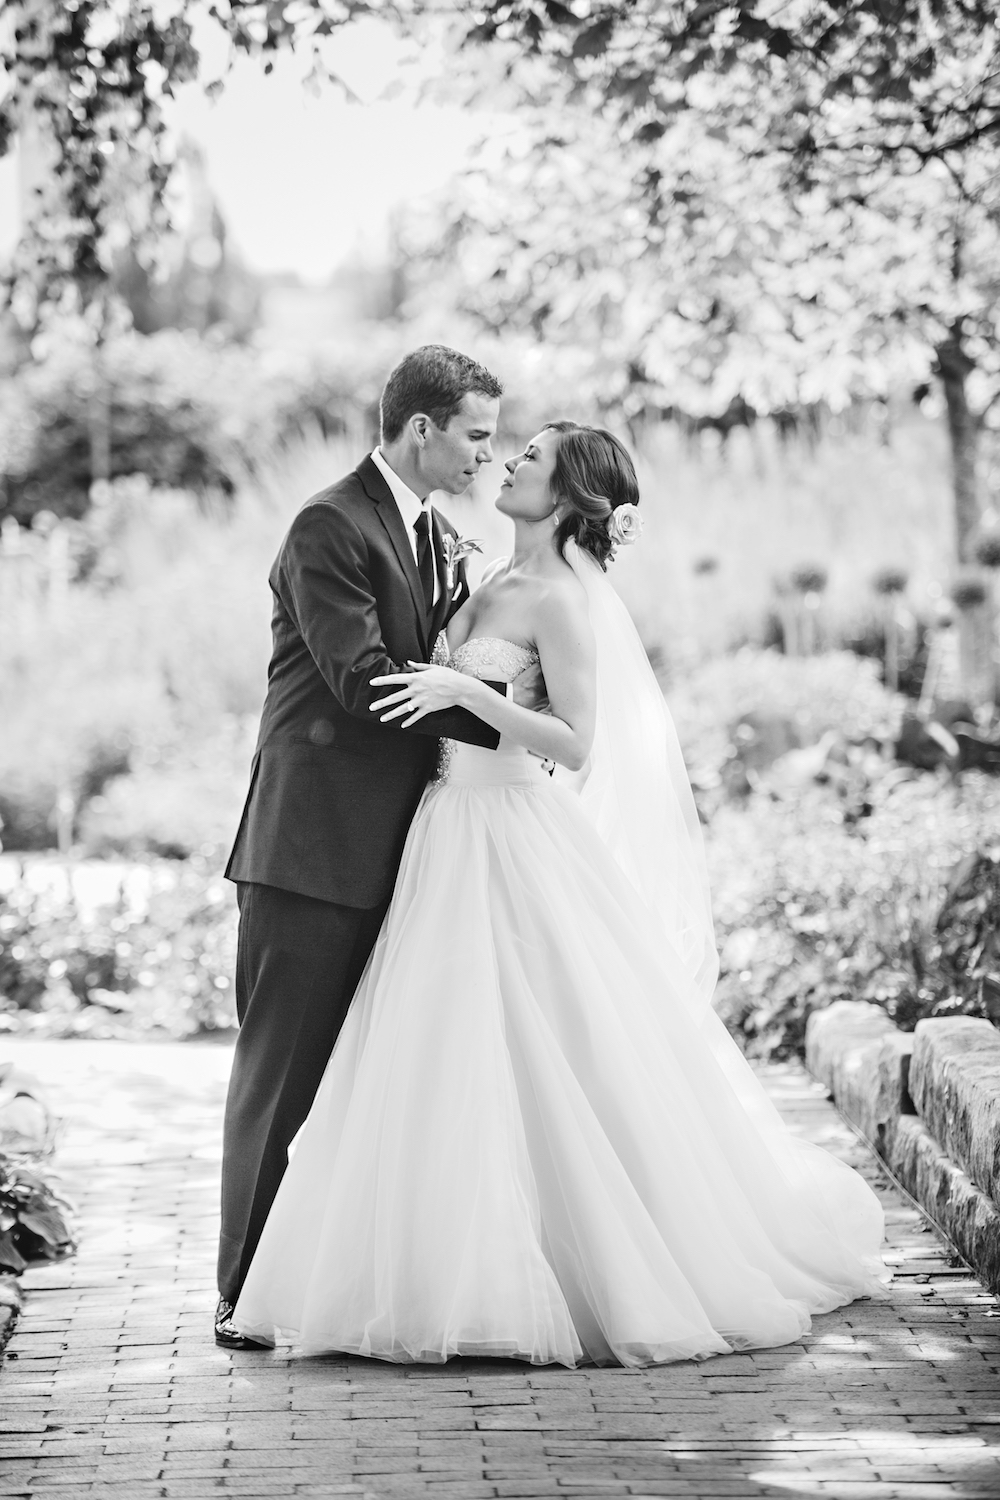 Ira+and+Lucy+Wedding+Planner+-+Double+Take+Photography+Boise,+ID.jpg